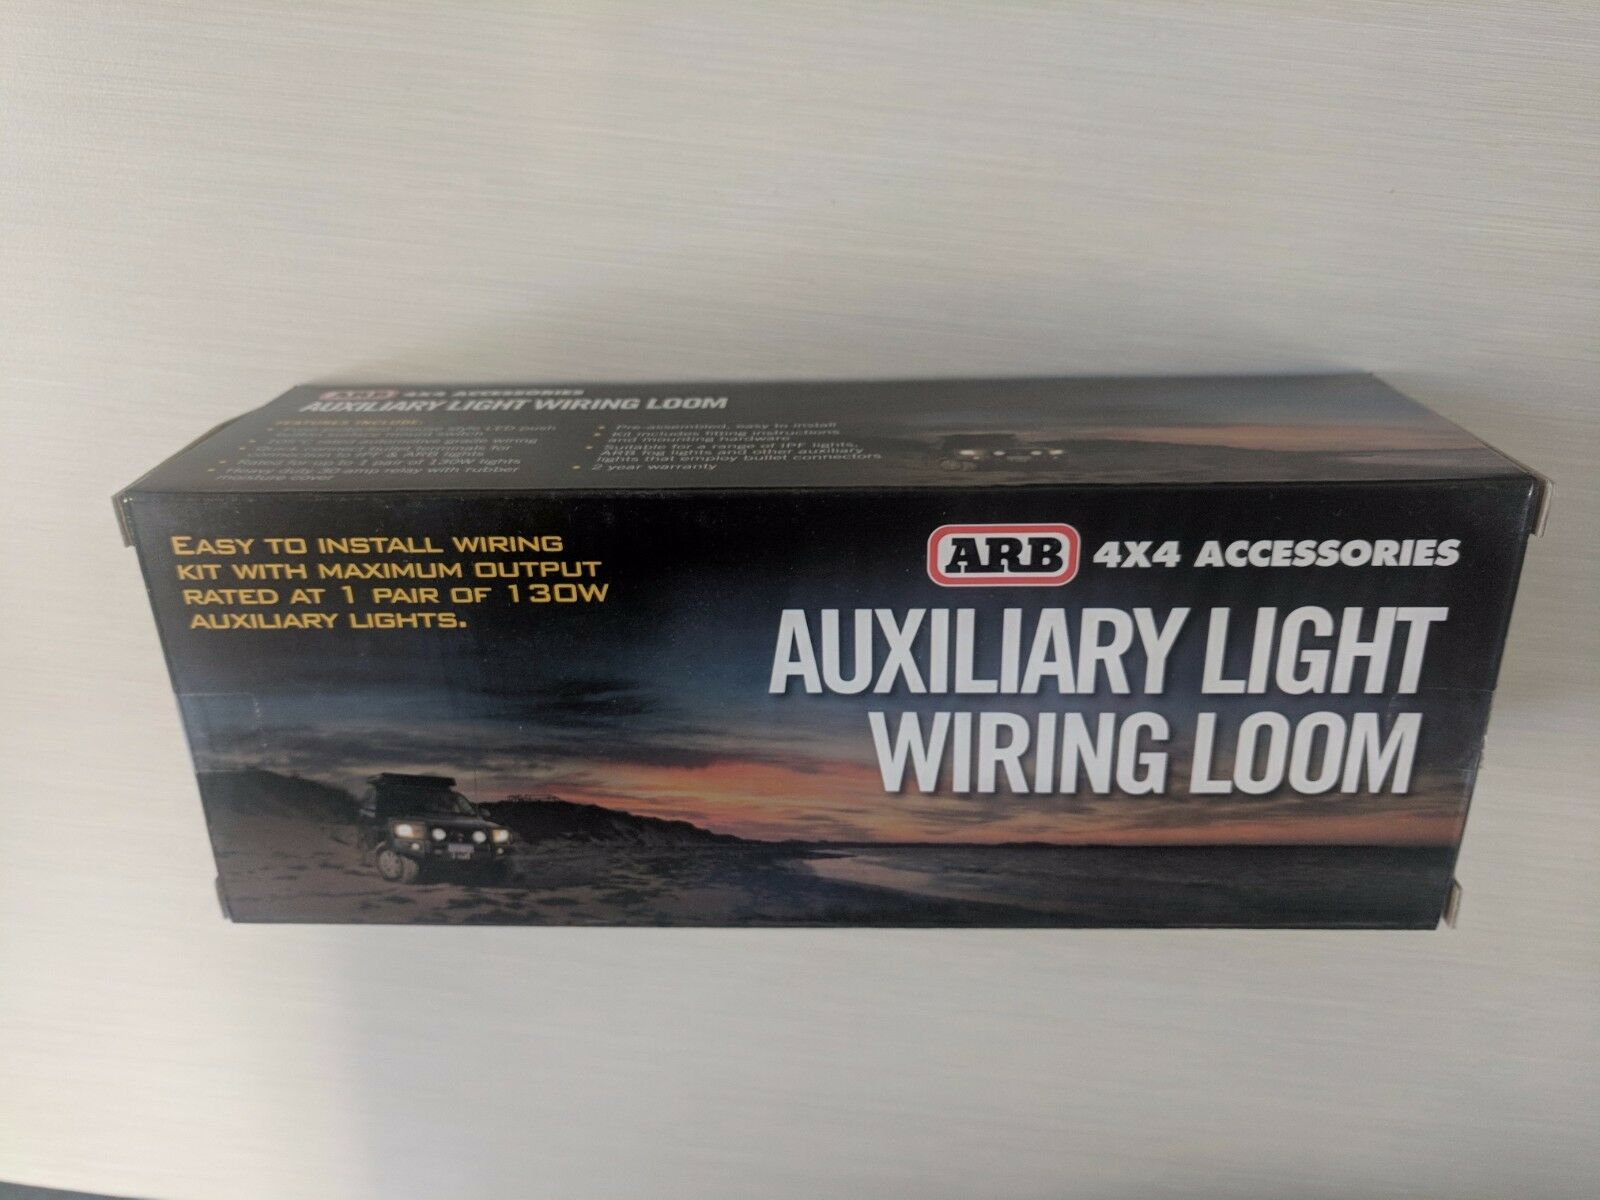 Arb H4 Wiring Harness Library Lighting Auxiliary Light